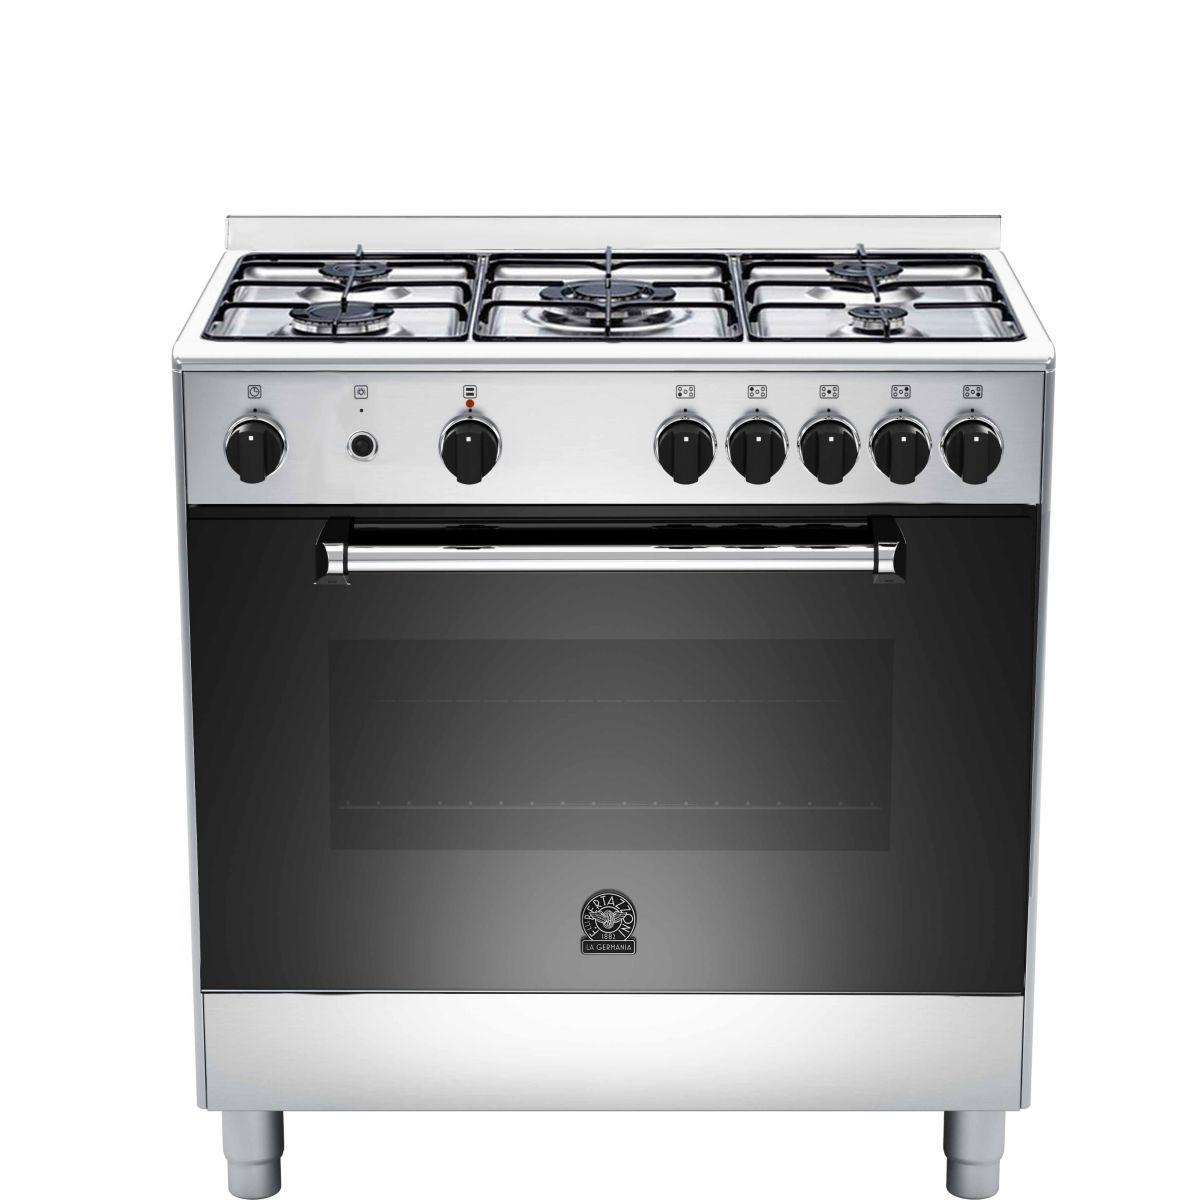 Piano de cuisson gaz bertazzoni germania am85c21dx (photo)